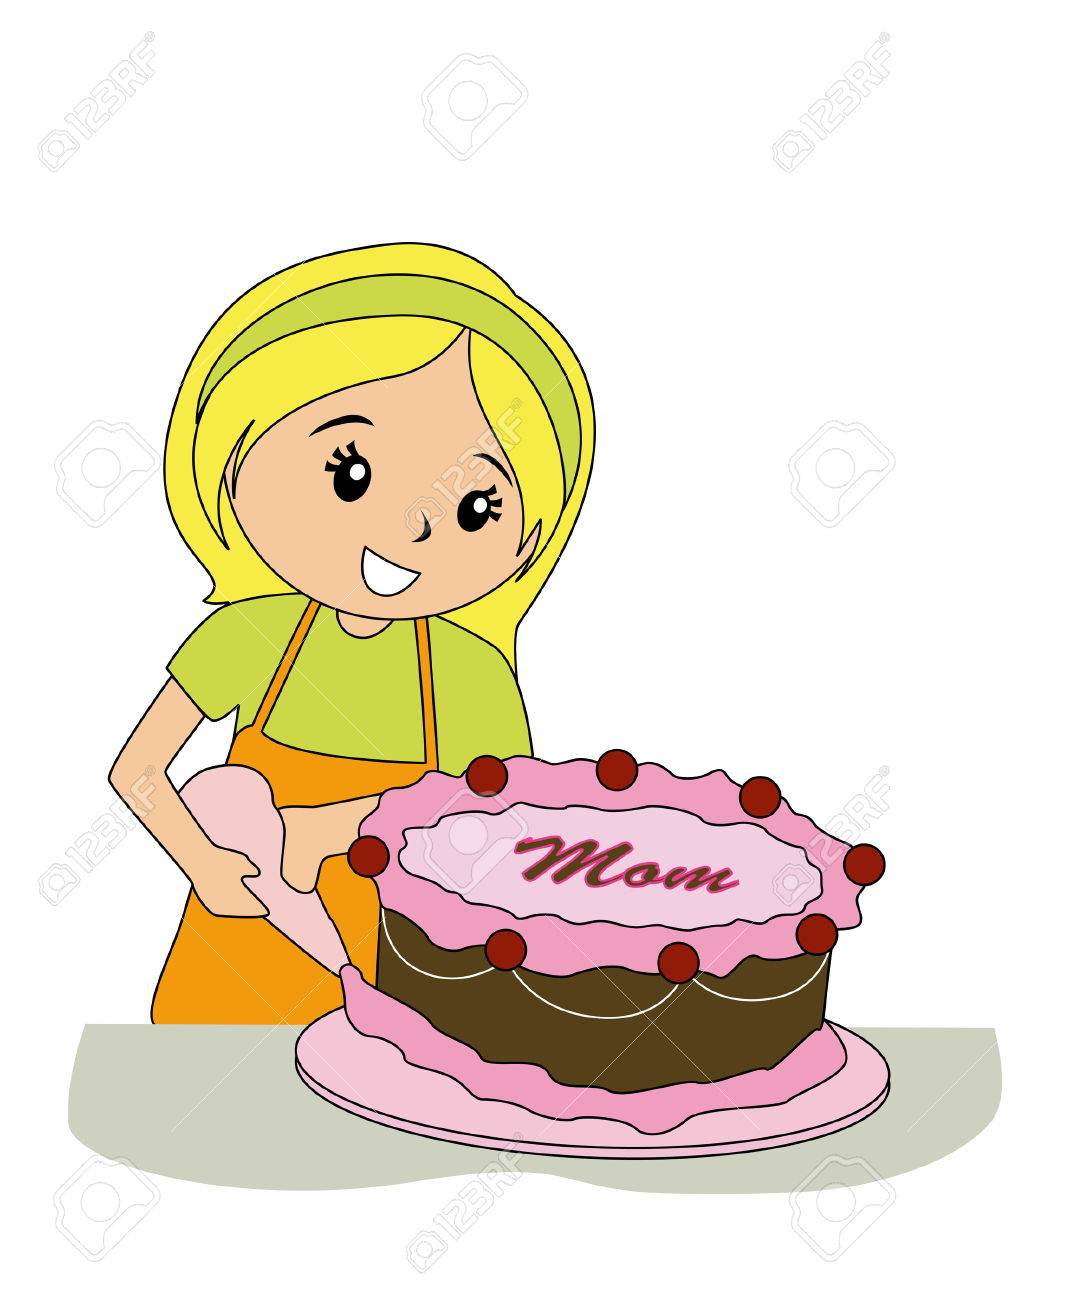 Girl Decorating Cake For Mom Royalty Free Cliparts, Vectors, And ...